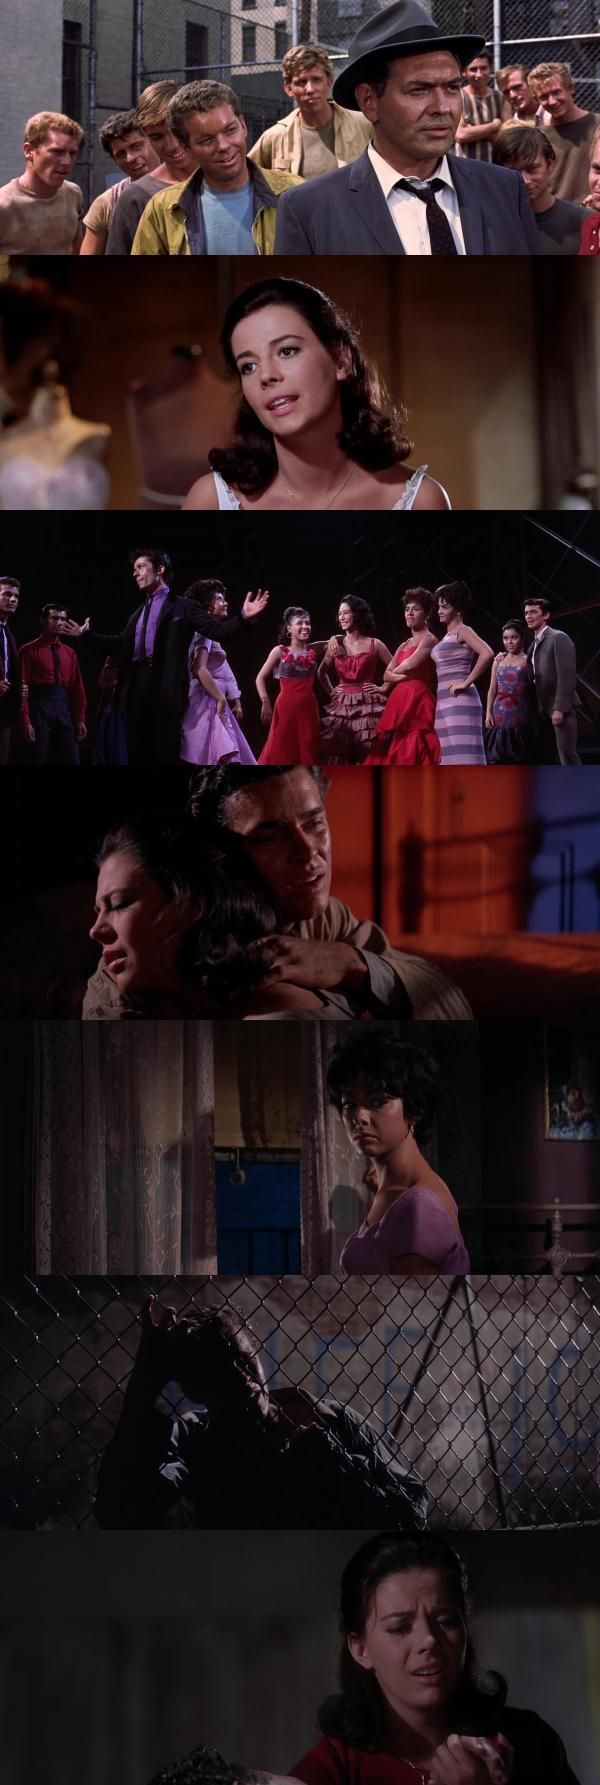 West Side Story (1961), produced by Robert Wise, directed by Robert Wise and Jerome Robbins.  I'd forgotten how gorgeous this is. I'd like it more if I cared for the singing and dancing, and for the very slight story, but it's not doing much for me. But give them credit: the dancing is impressive, with Russ Tamblyn (Riff) doing some incredible acrobatics.